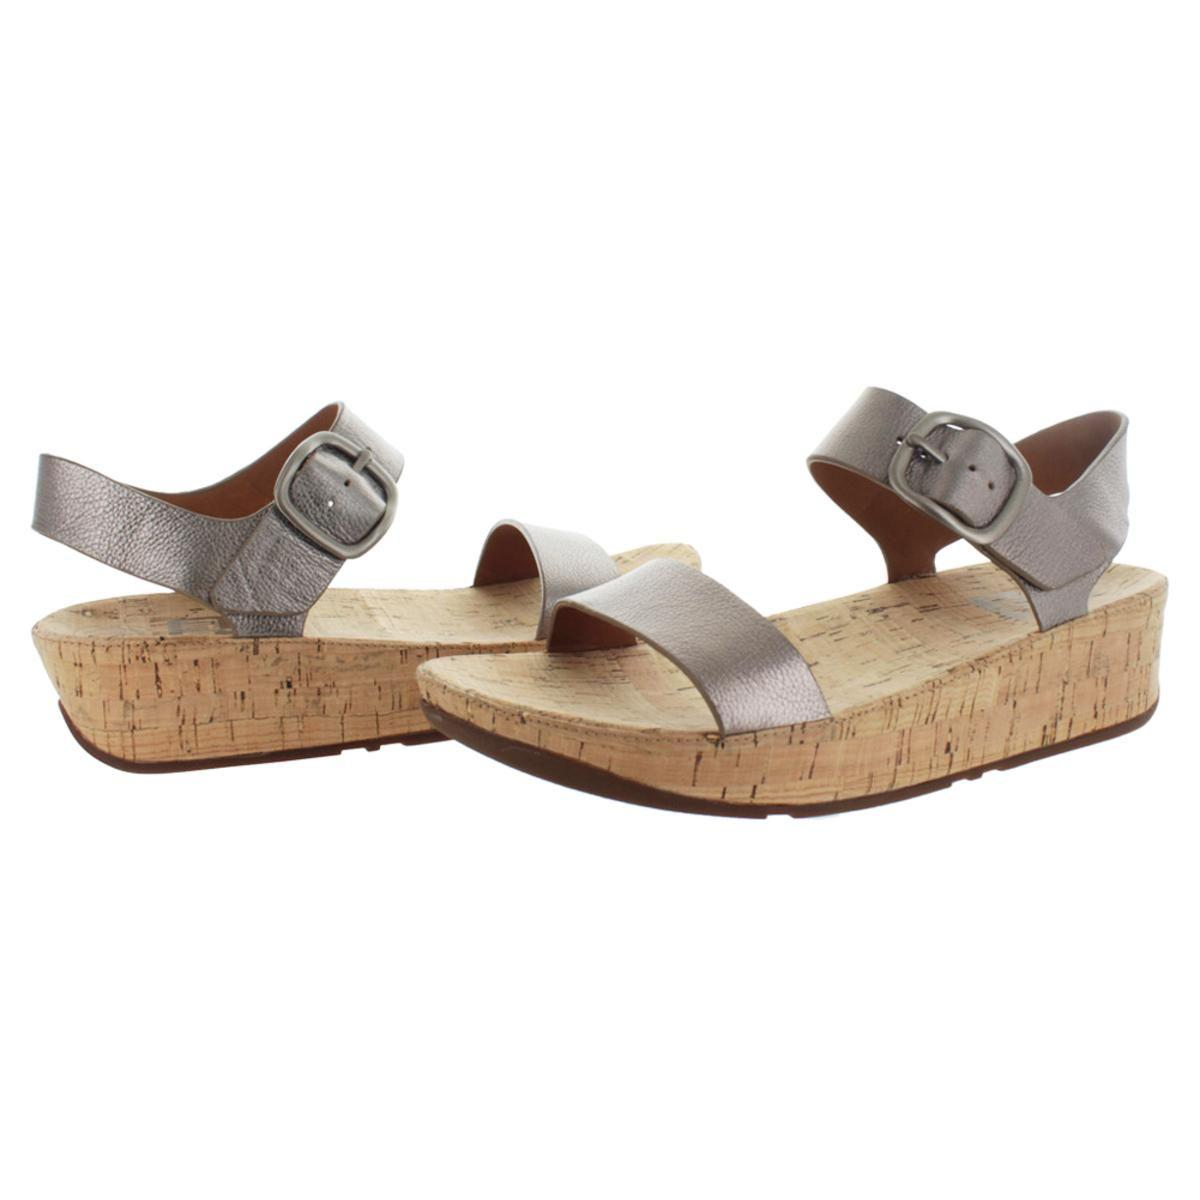 ff59481bf6a Lyst - Fitflop Womens Bon Leather Cushioned Platform Sandals